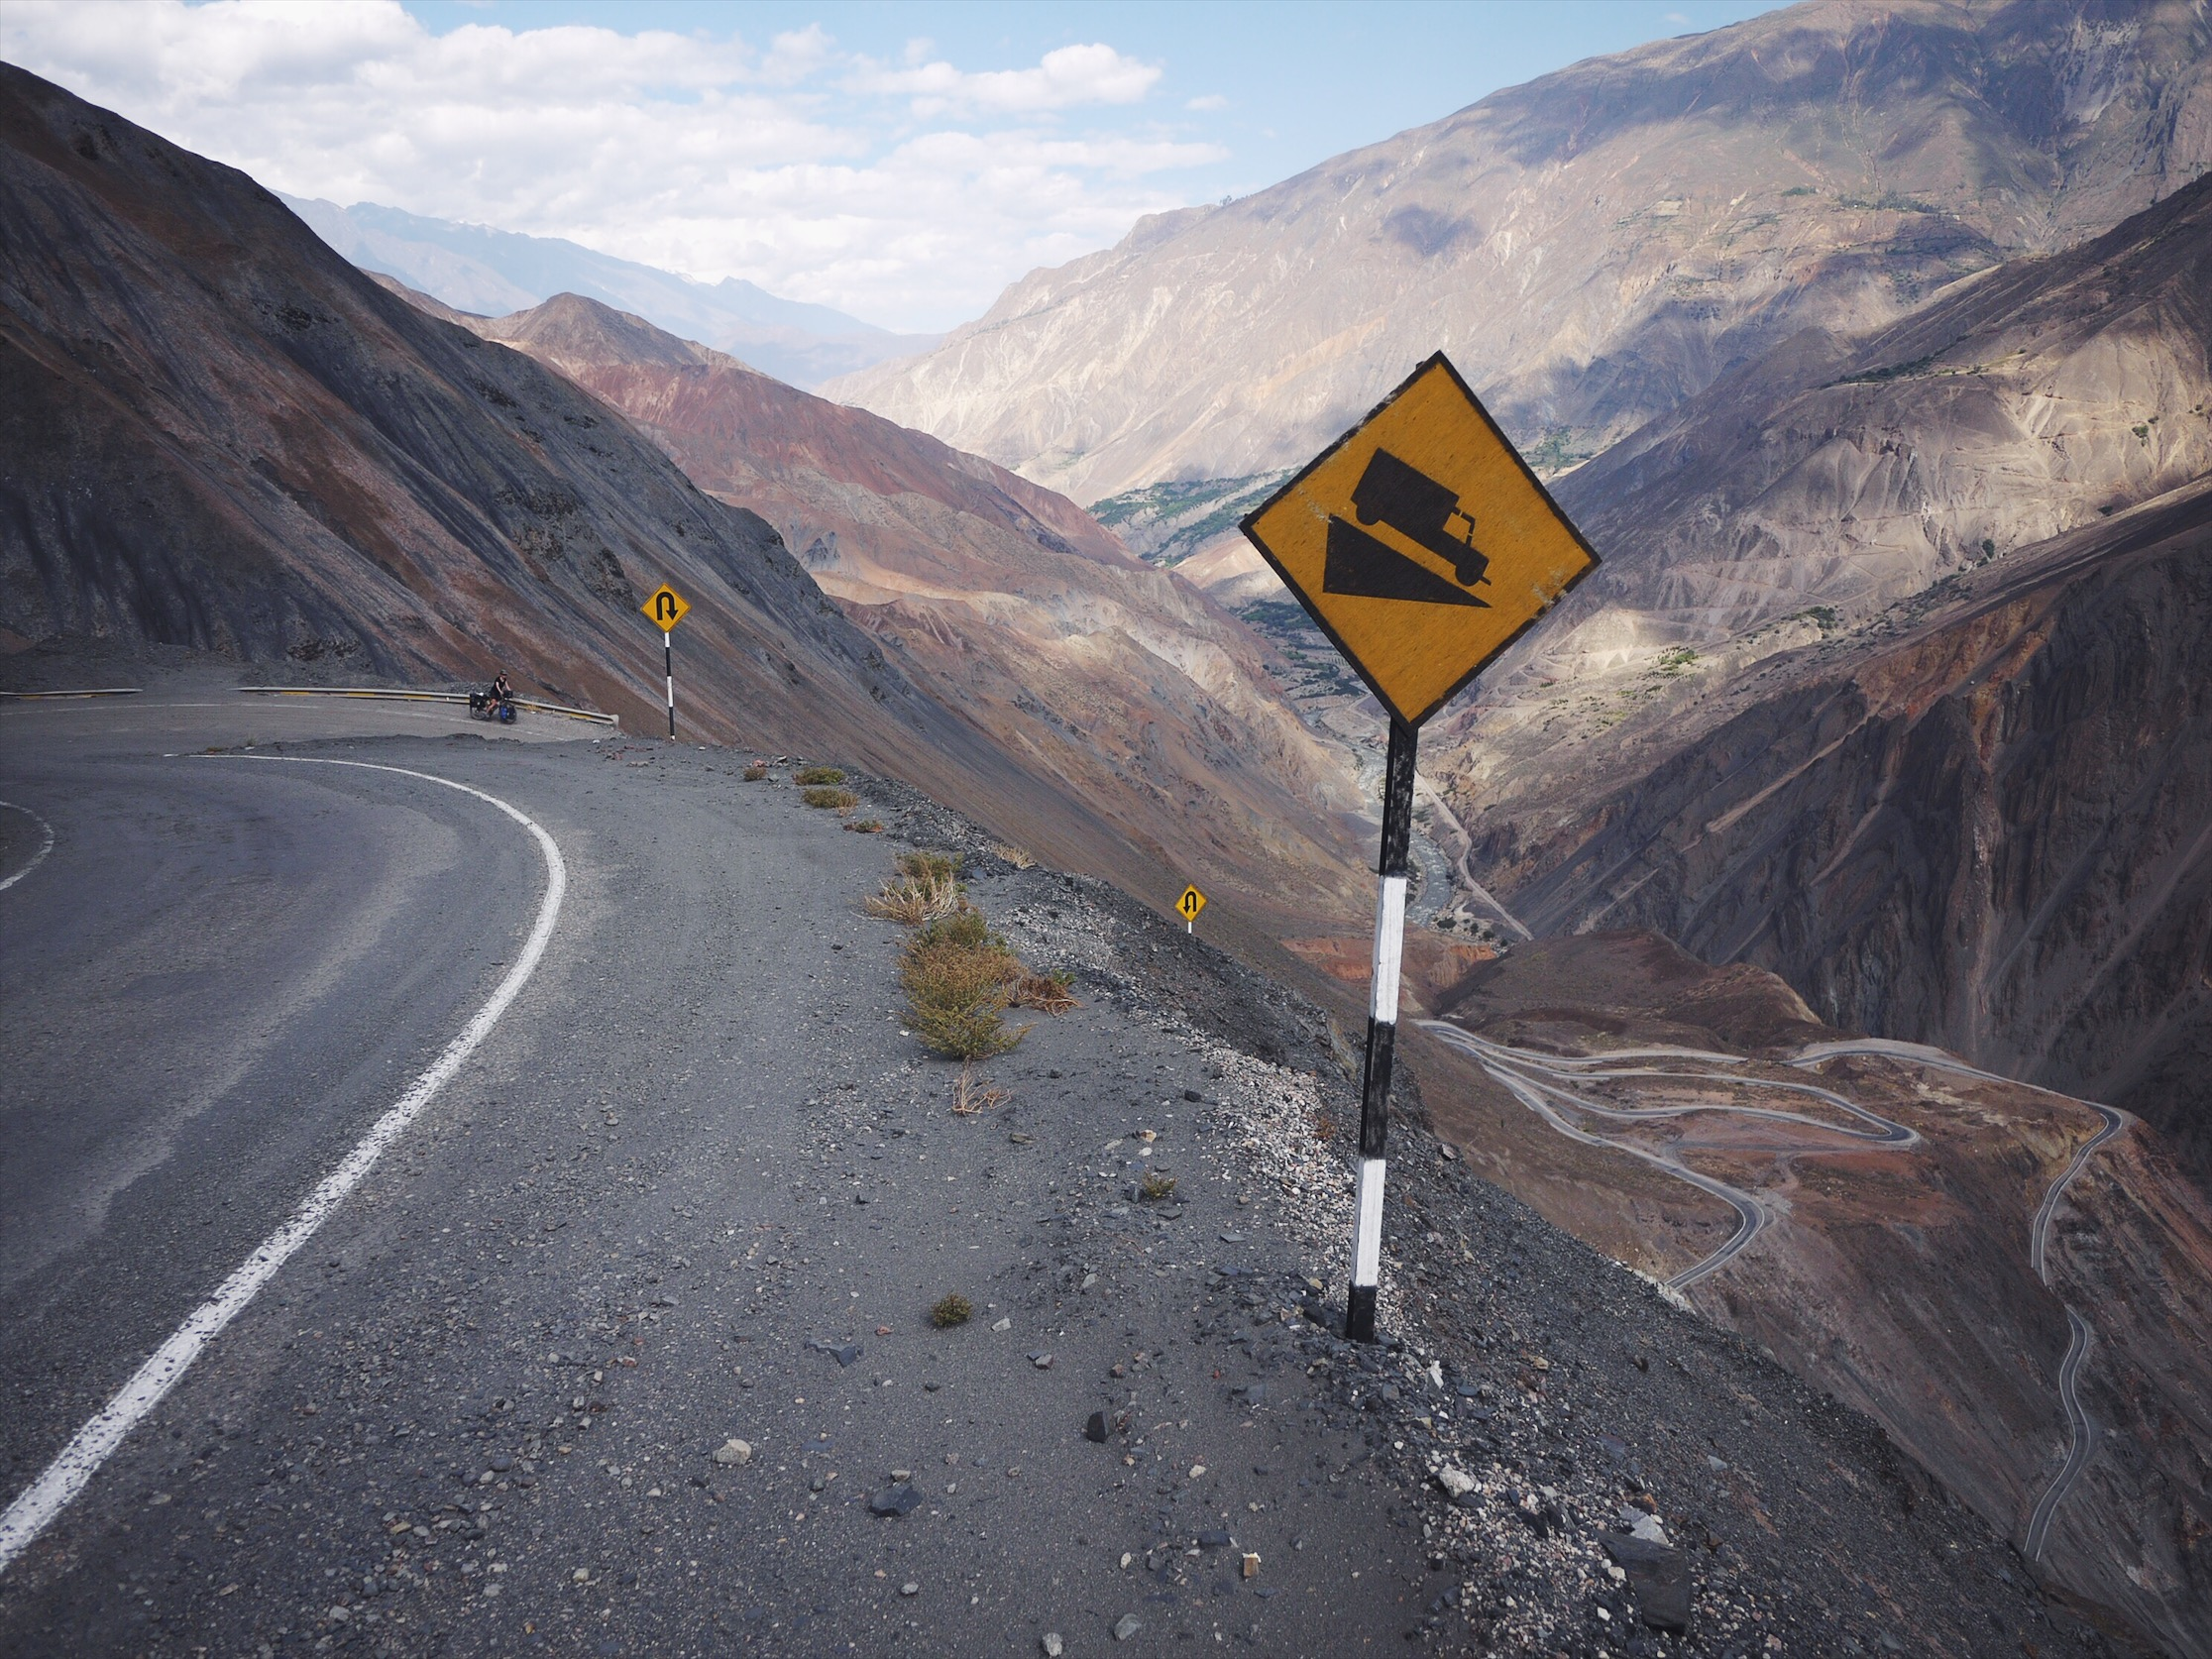 No guardrail, single lane, and 15 miles into a 30 mile descent and someone decides they need to stick a sign in the dirt as an FYI. Peru is the best.